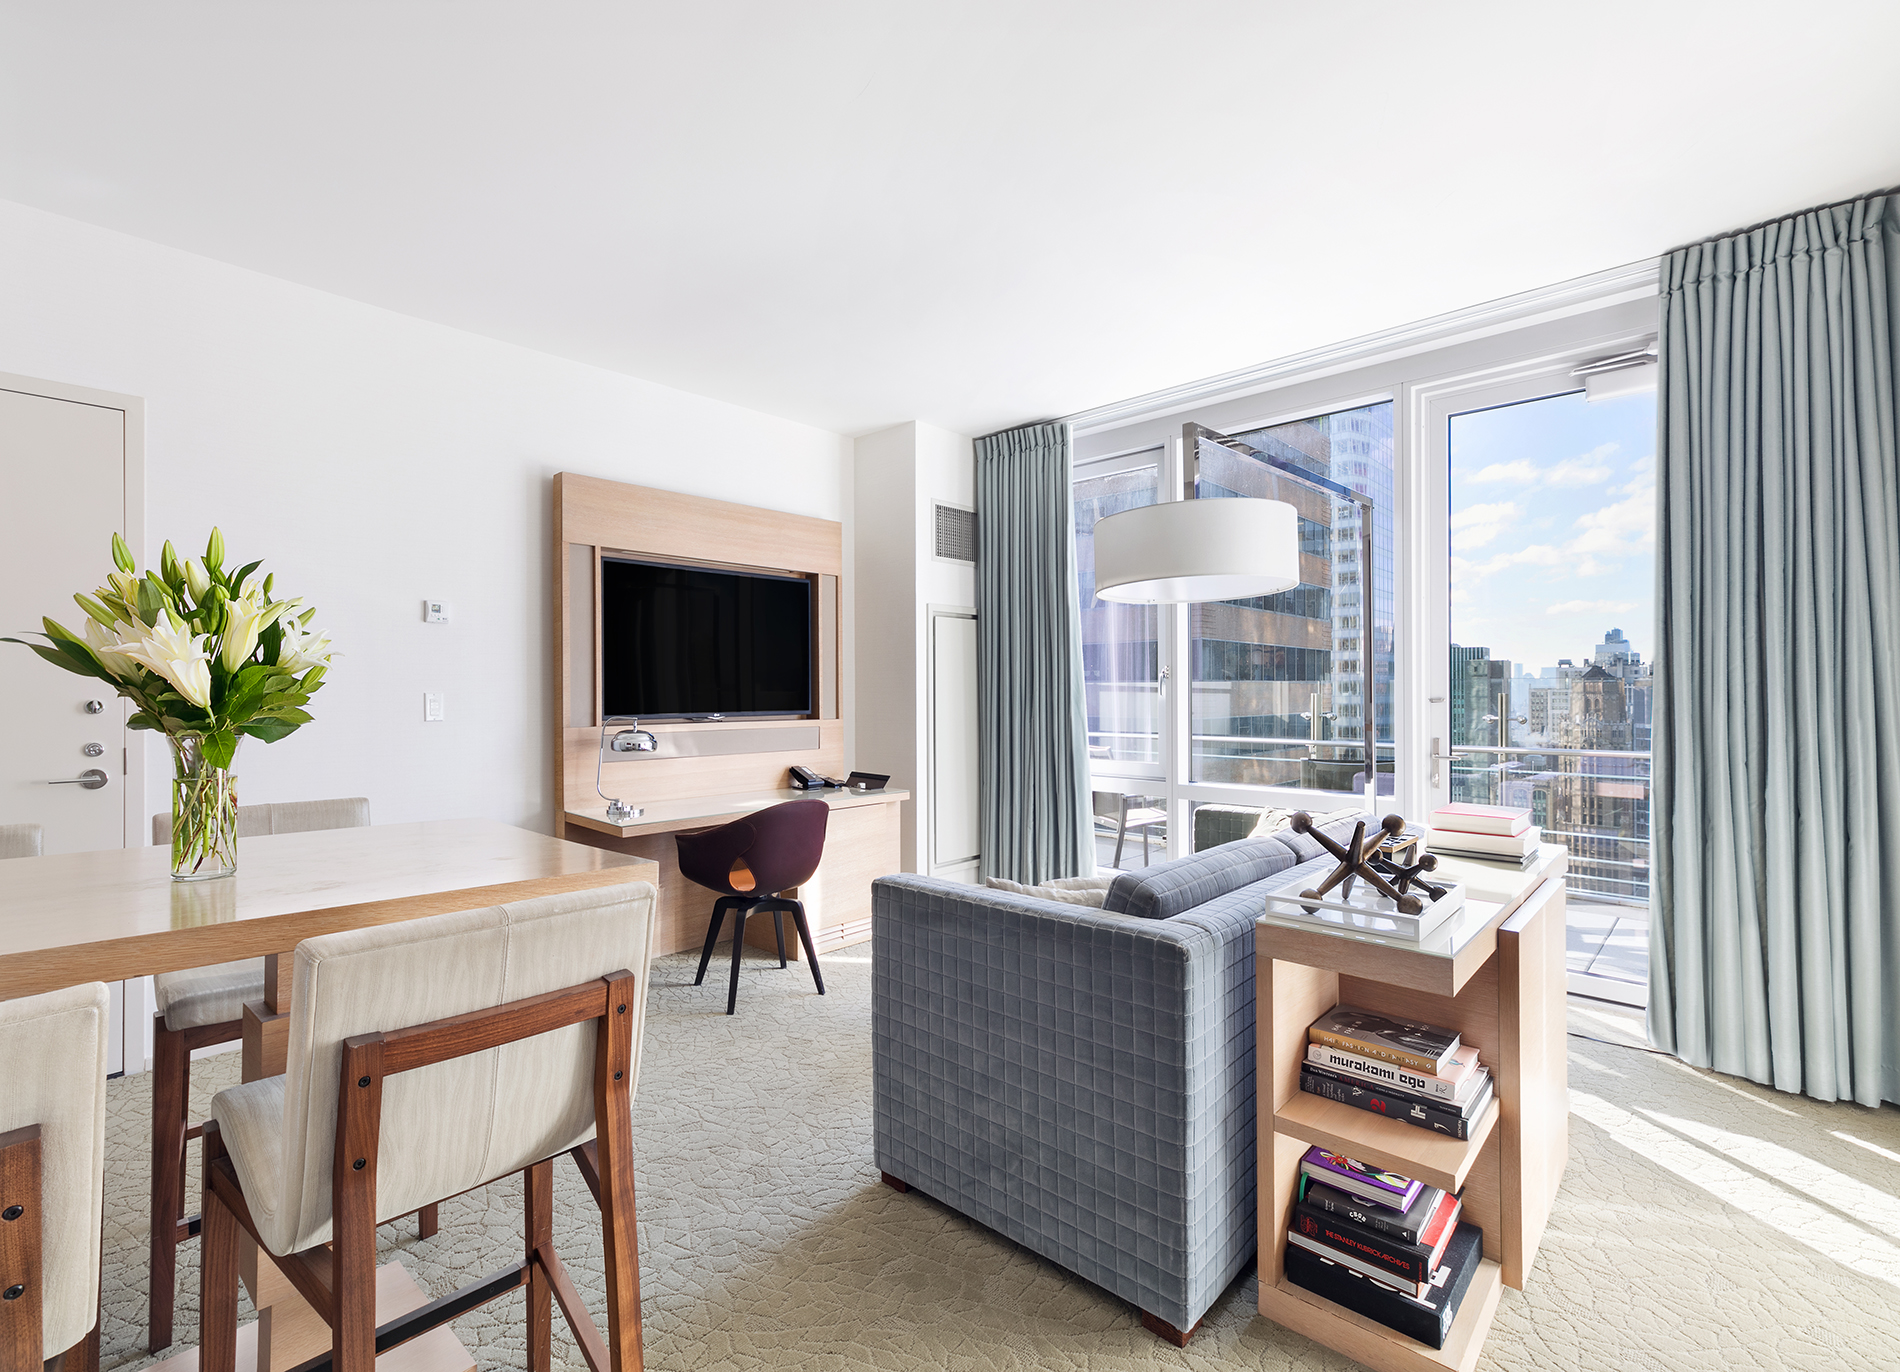 Hyatt Centric Times Square, NY - Day Rooms | HotelsByDay